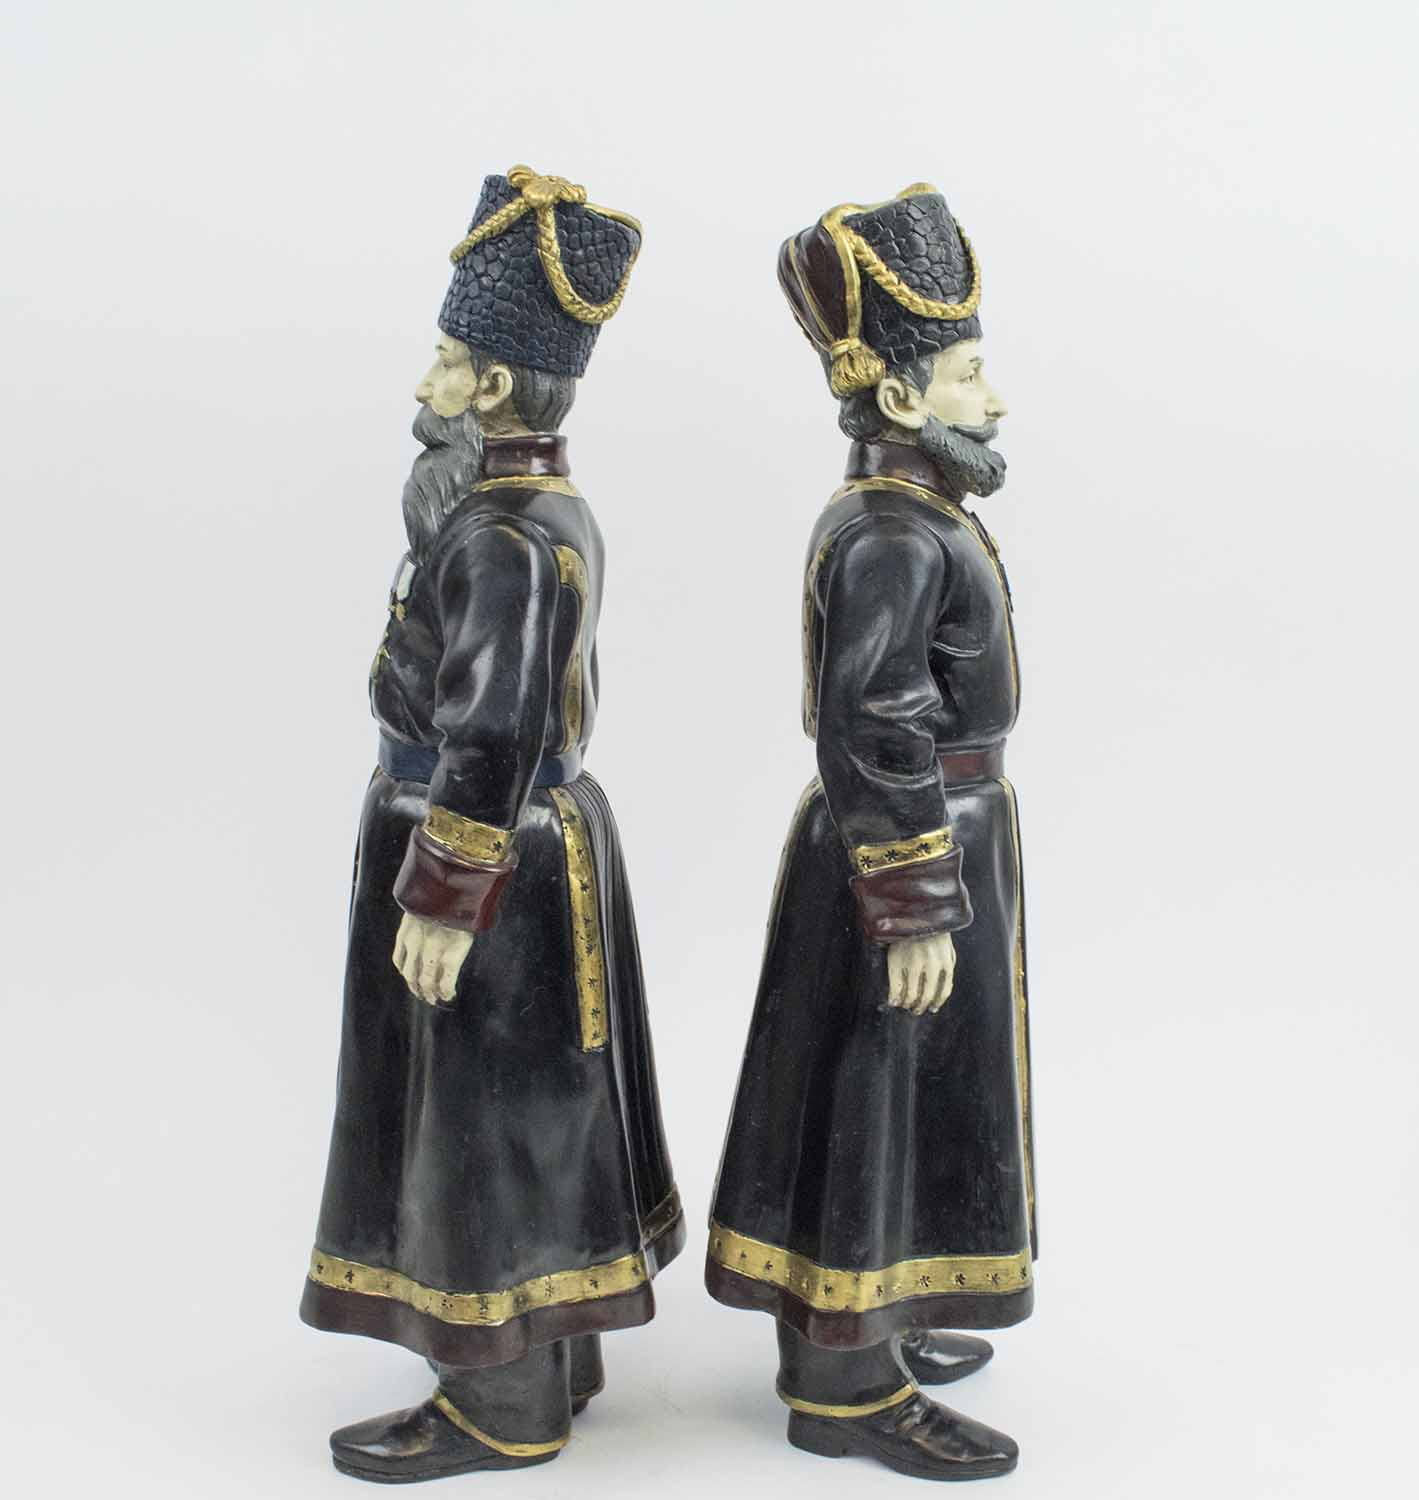 FABERGE MANNER BRONZE COSSACKS, a pair, Pustynnikov chamber Cossack 1894, - Image 4 of 6